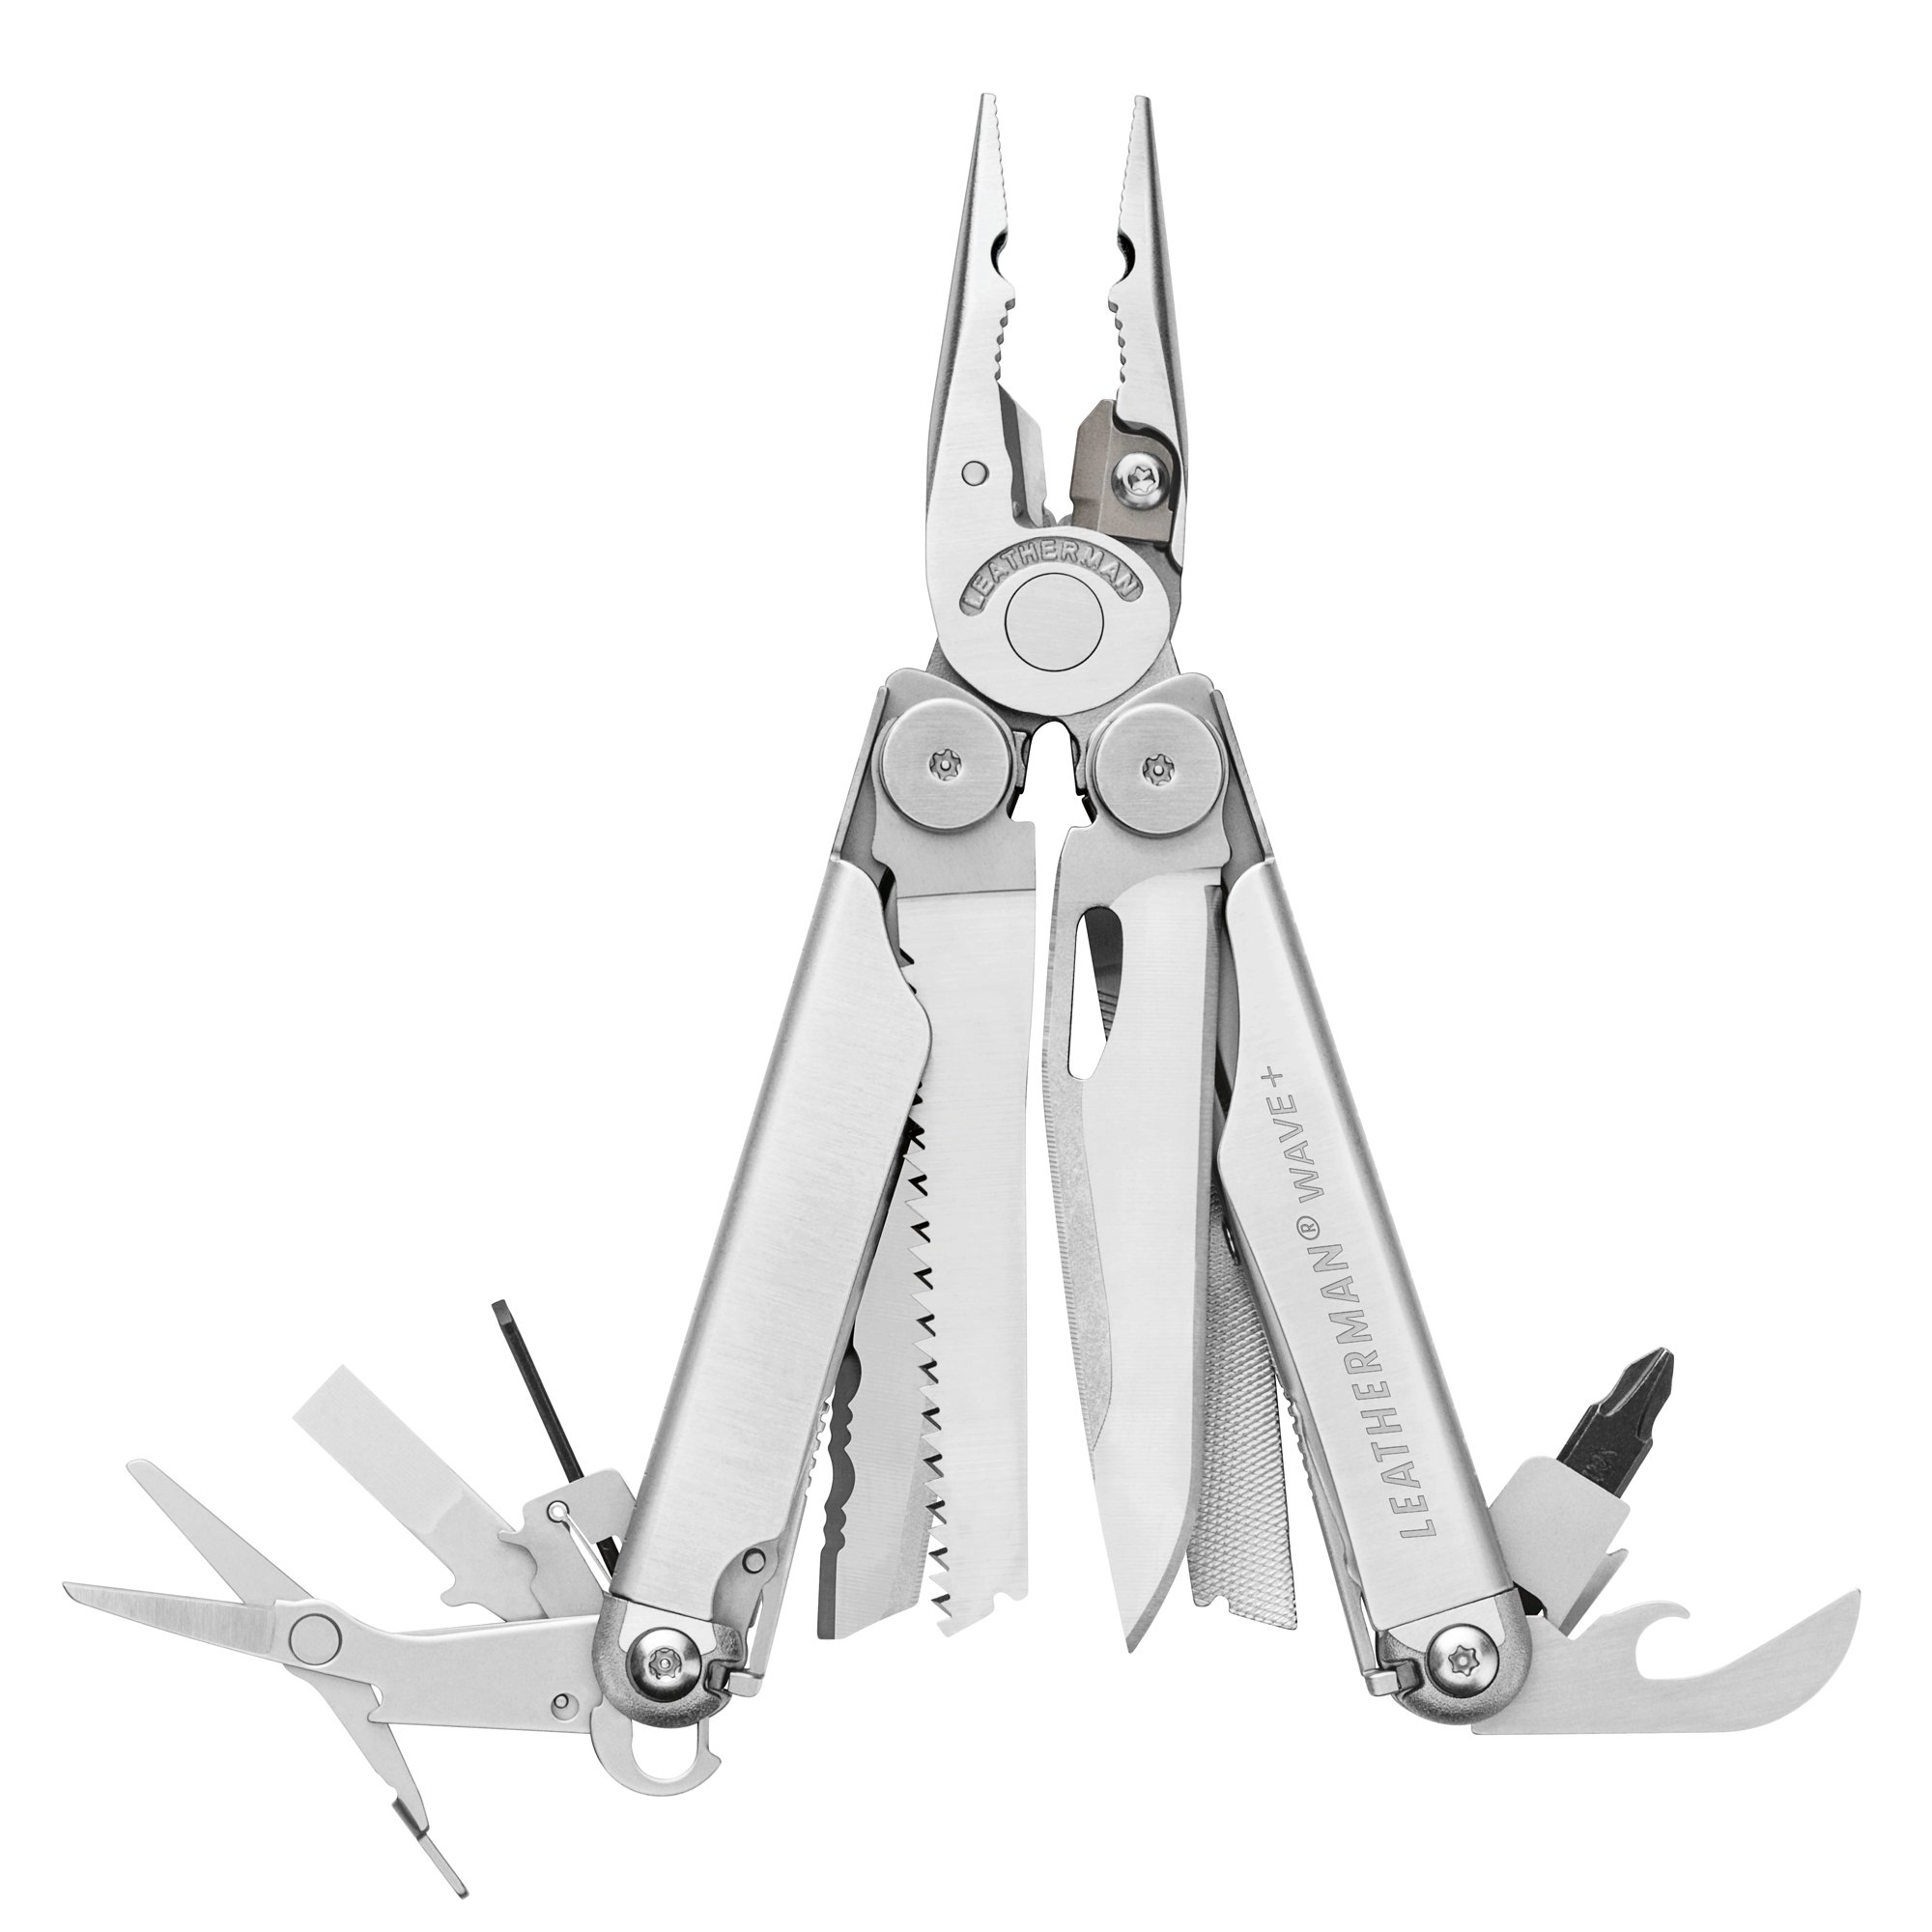 LEATHERMAN - Wave Plus with Cap Crimper Multitool, Stainless Steel